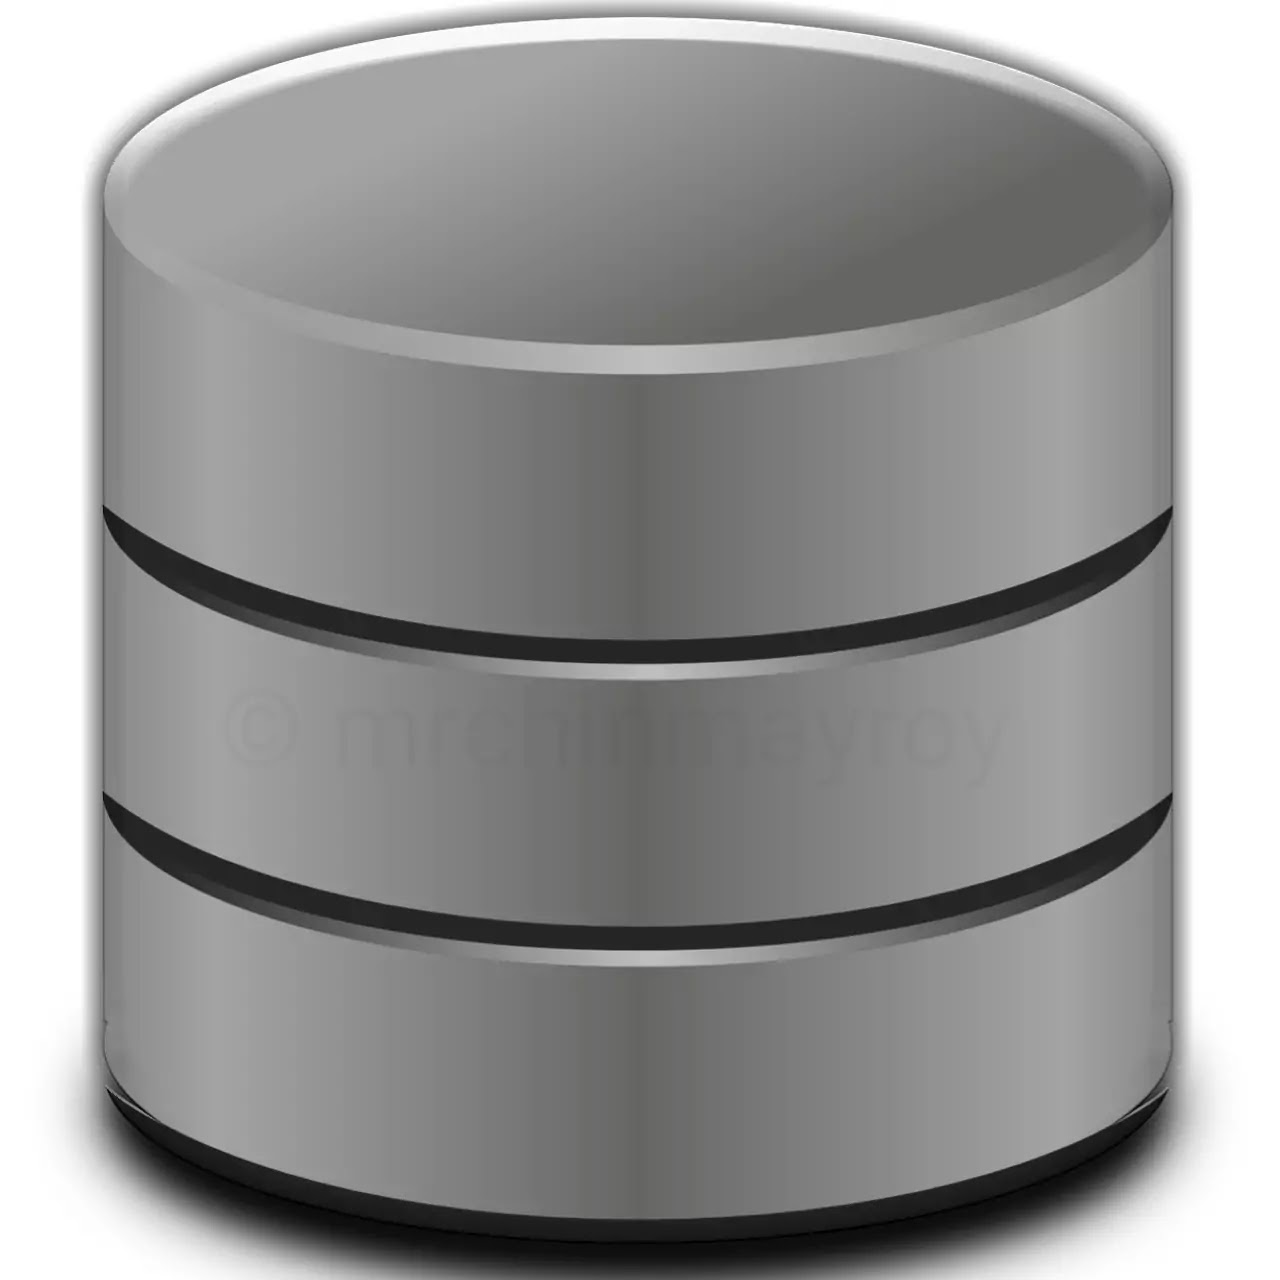 Database bangla blog all interview questions and answers